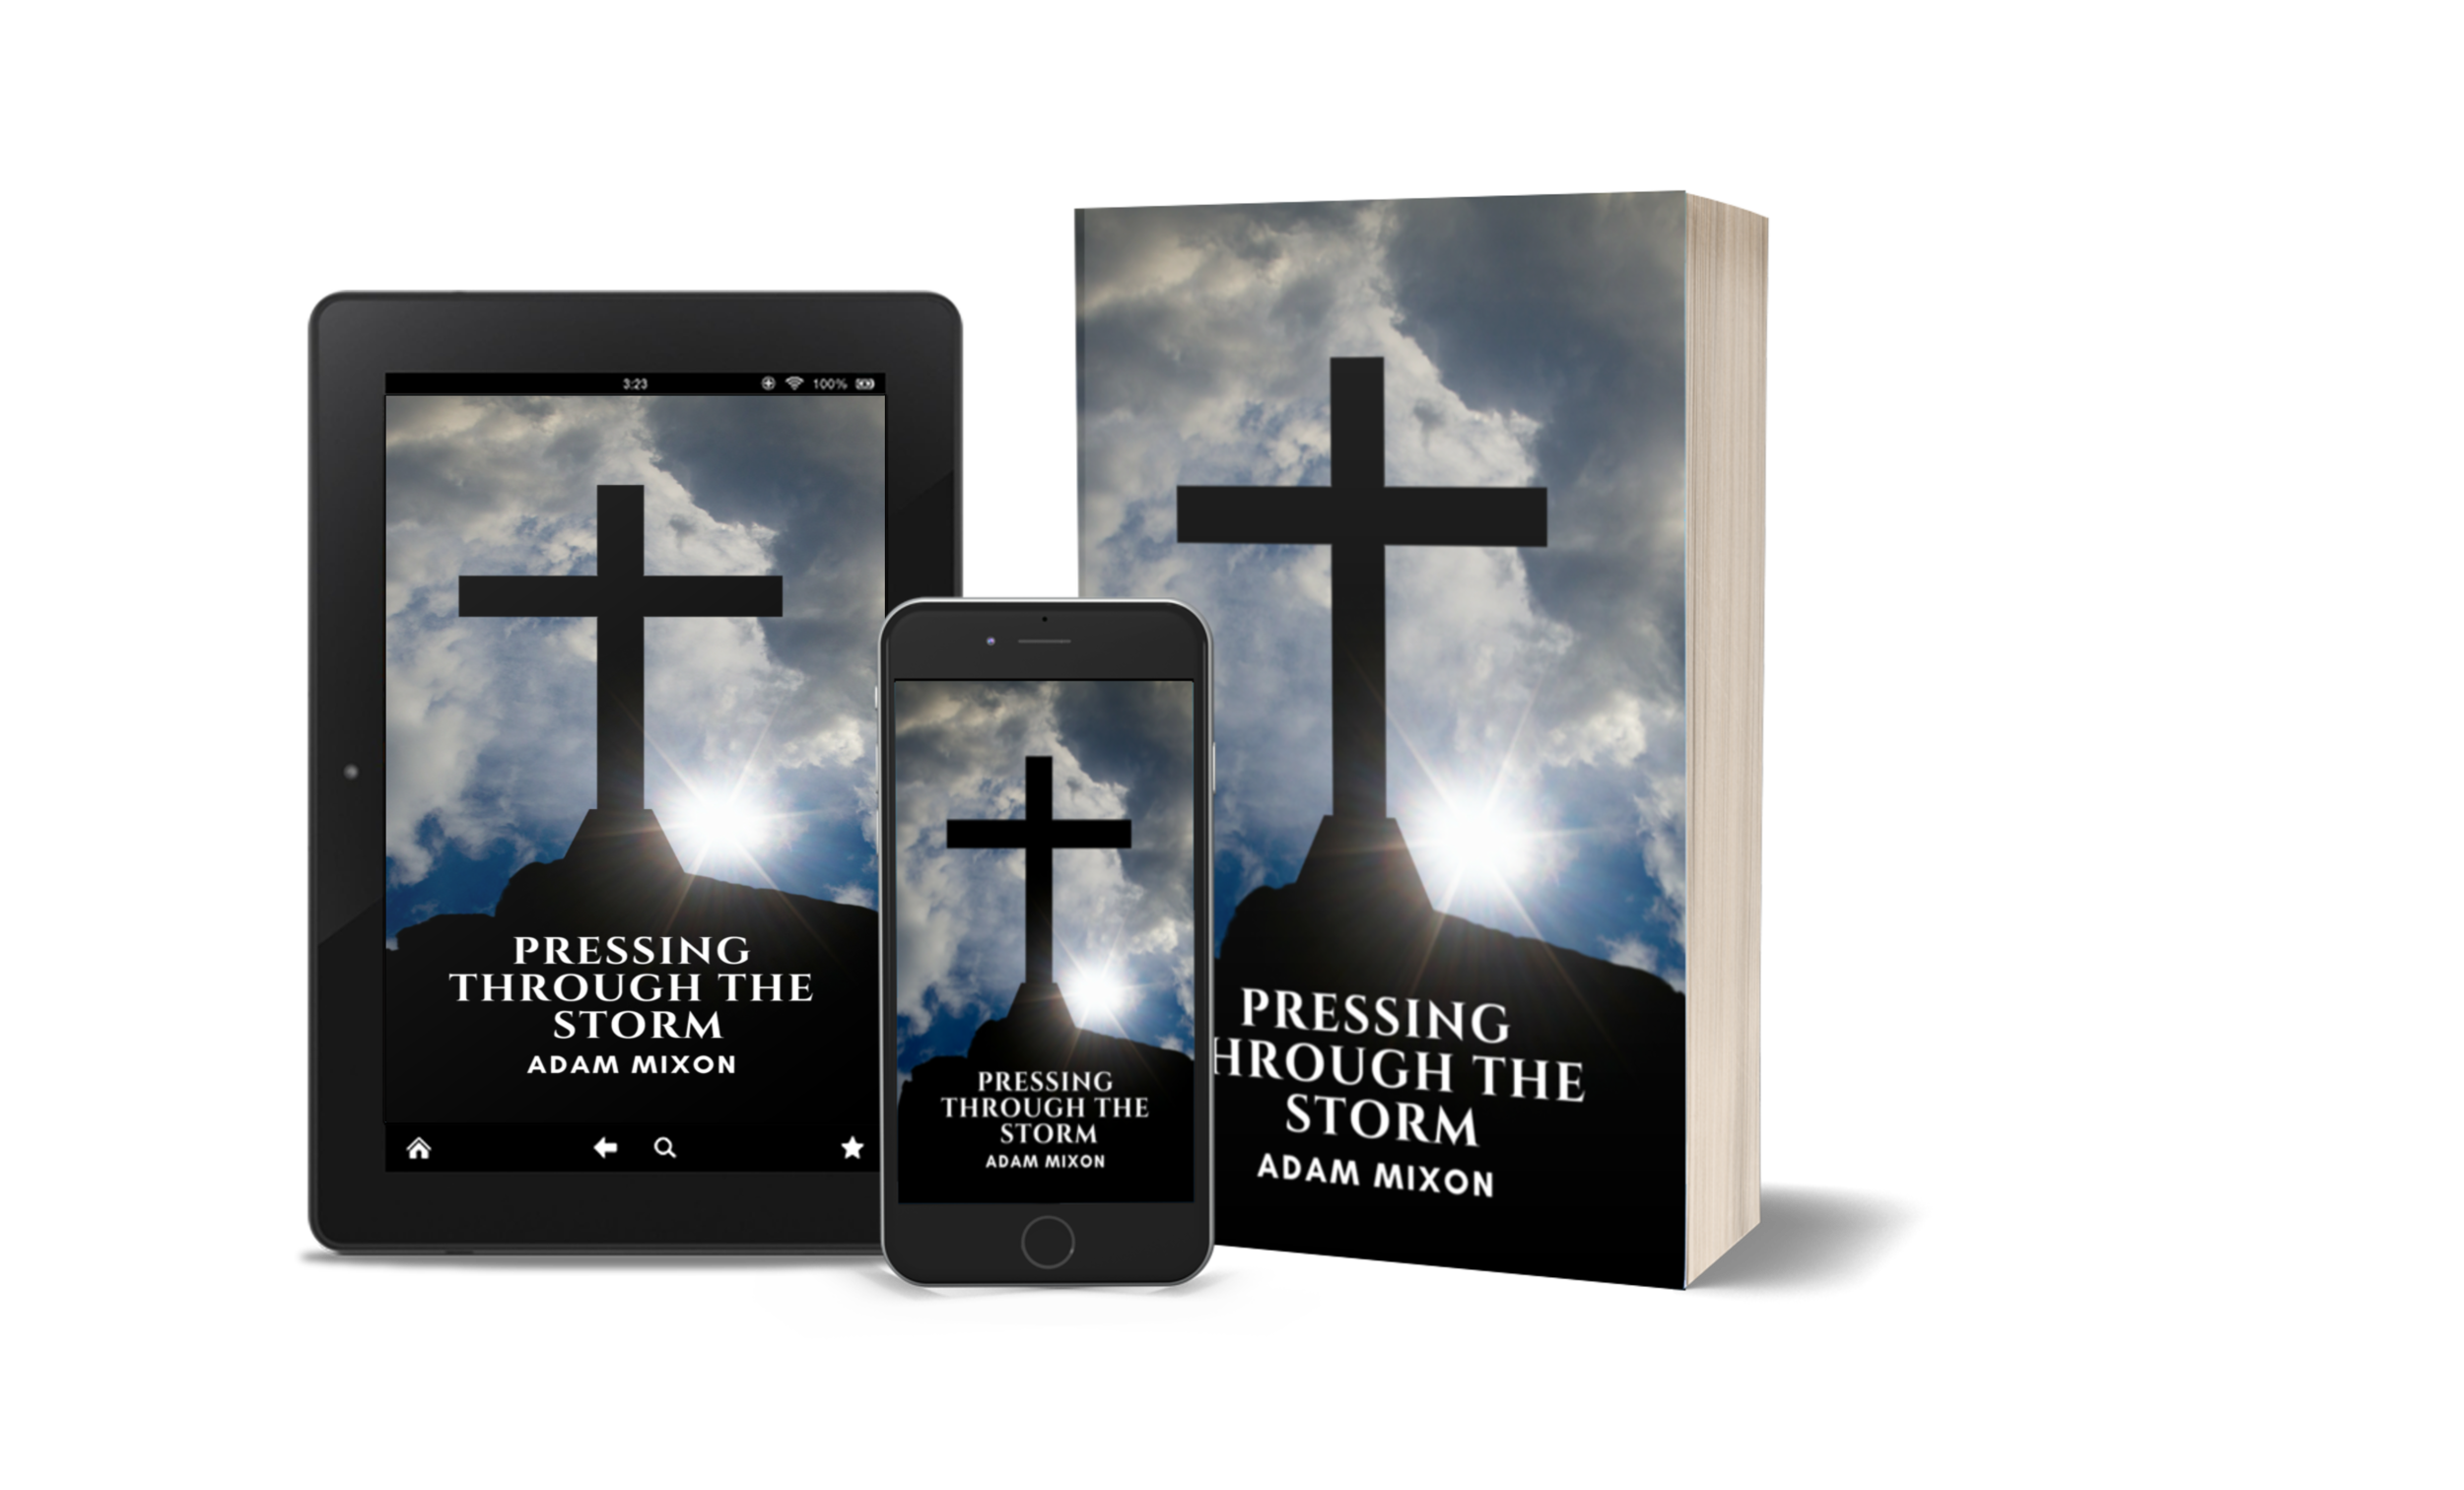 Pressing Through the Storm - Discerning God's Will During Difficult Times